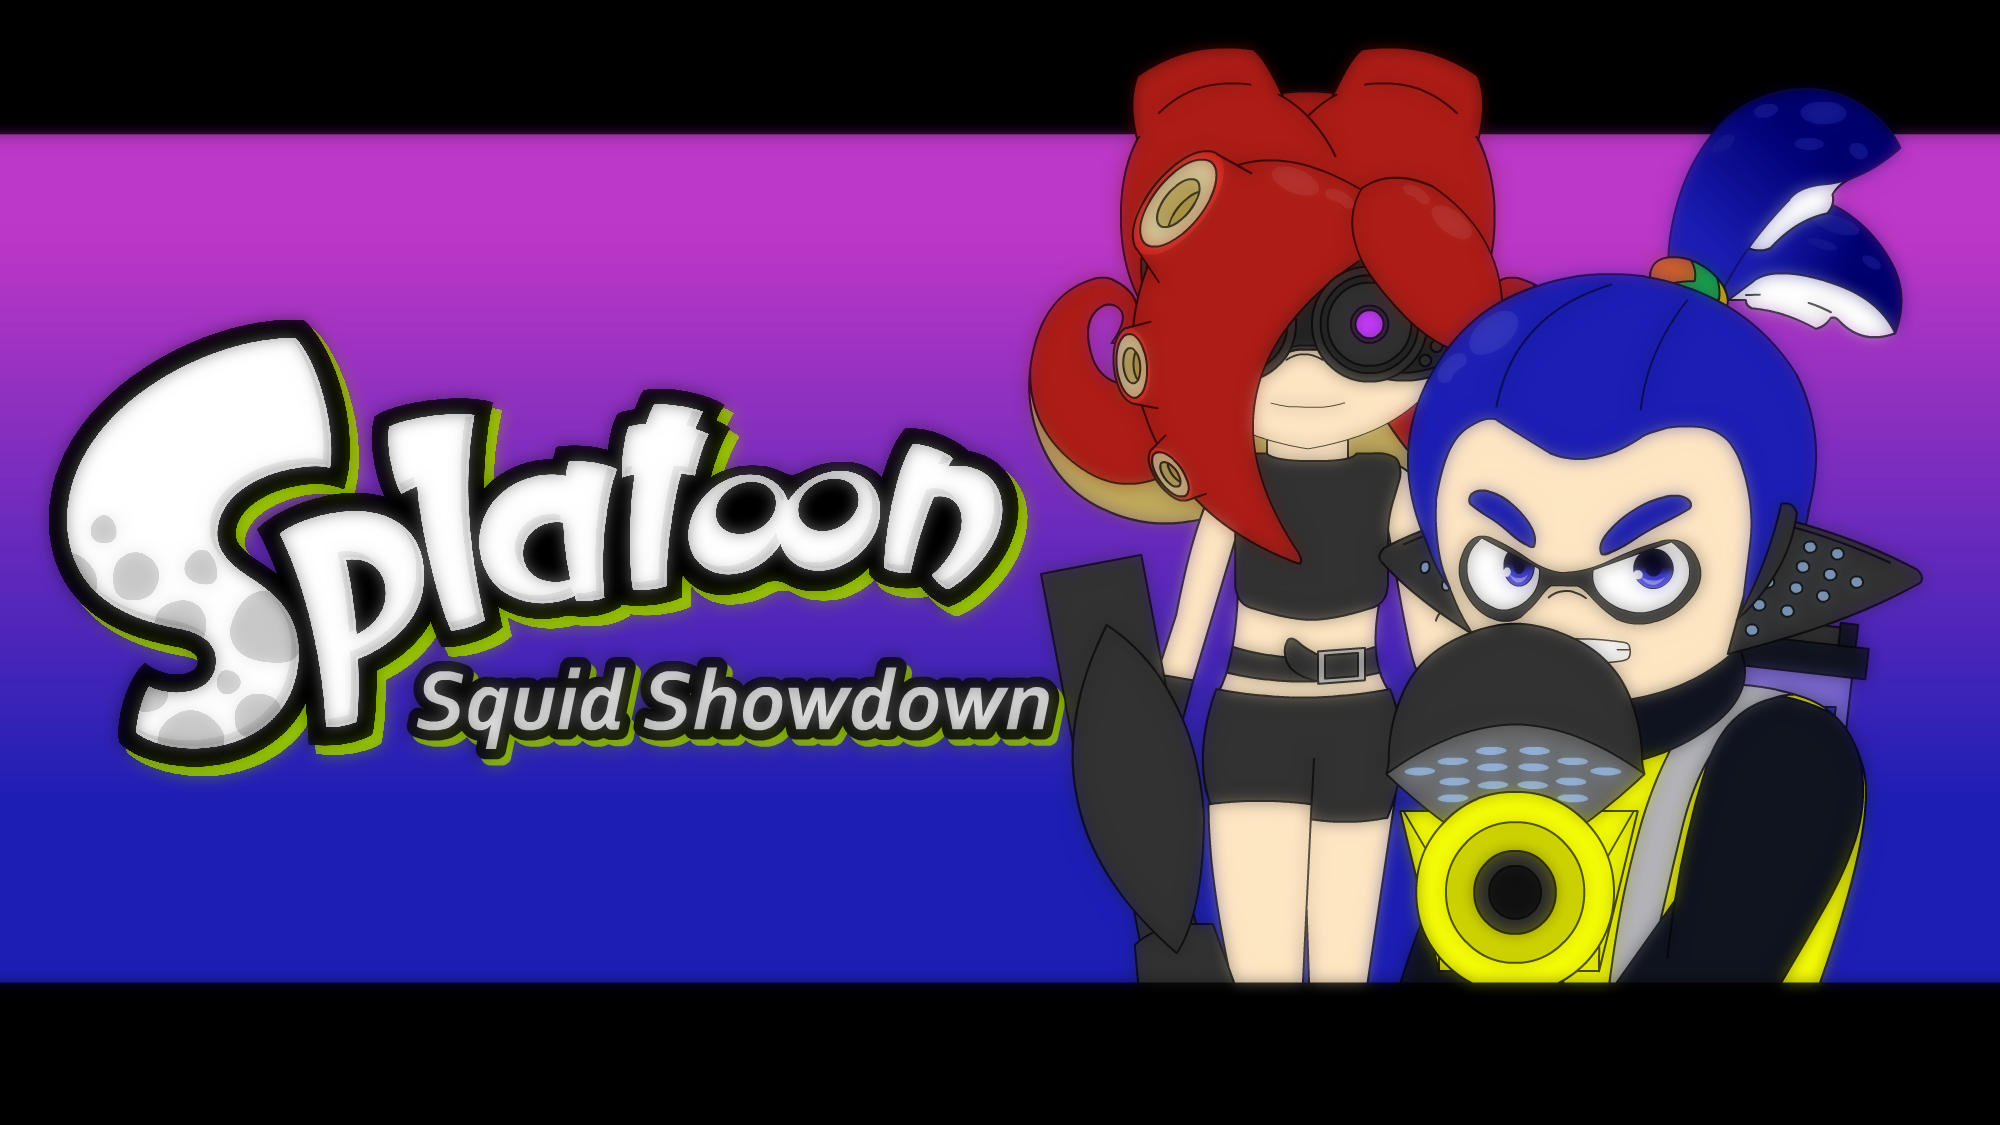 856676_143328598852_Splatoon-SquidShowdown.png